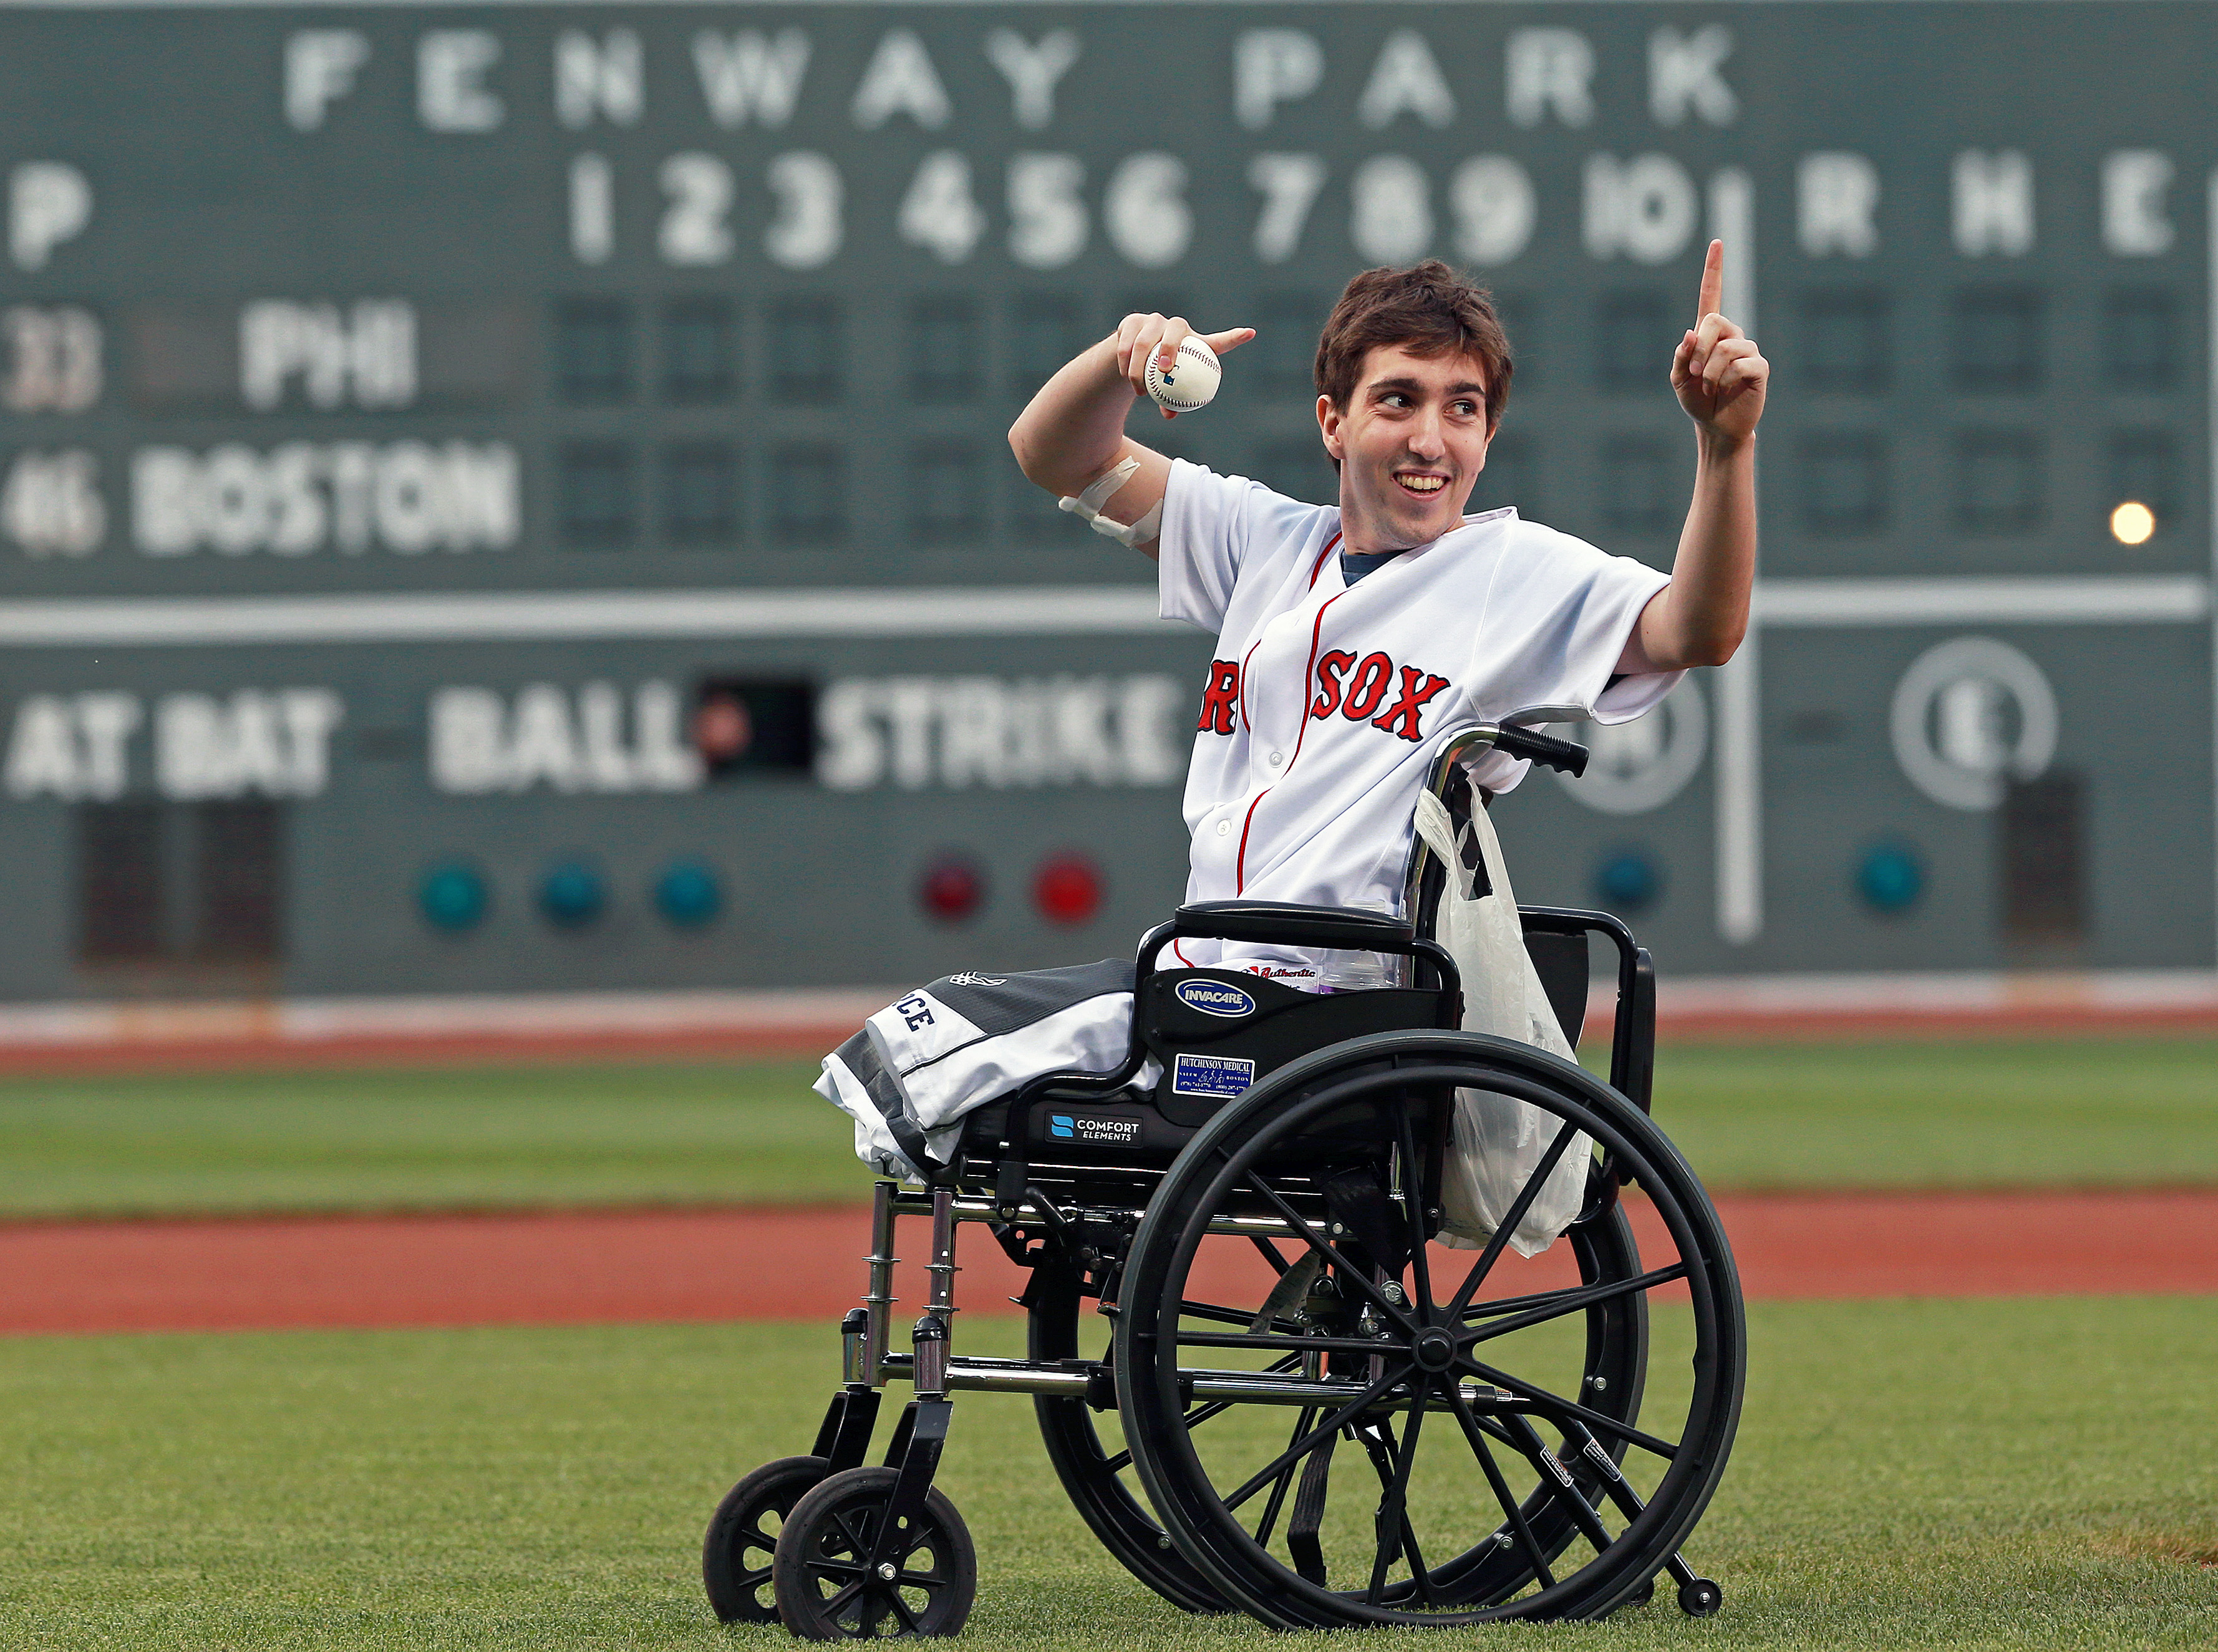 Boston Marathon bombing victim Jeff Bauman threw out a ceremonial first pitch on May 28, 2013, at Boston's Fenway Park, where the Philadelphia Phillies played the Red Sox in a regular-season baseball game.